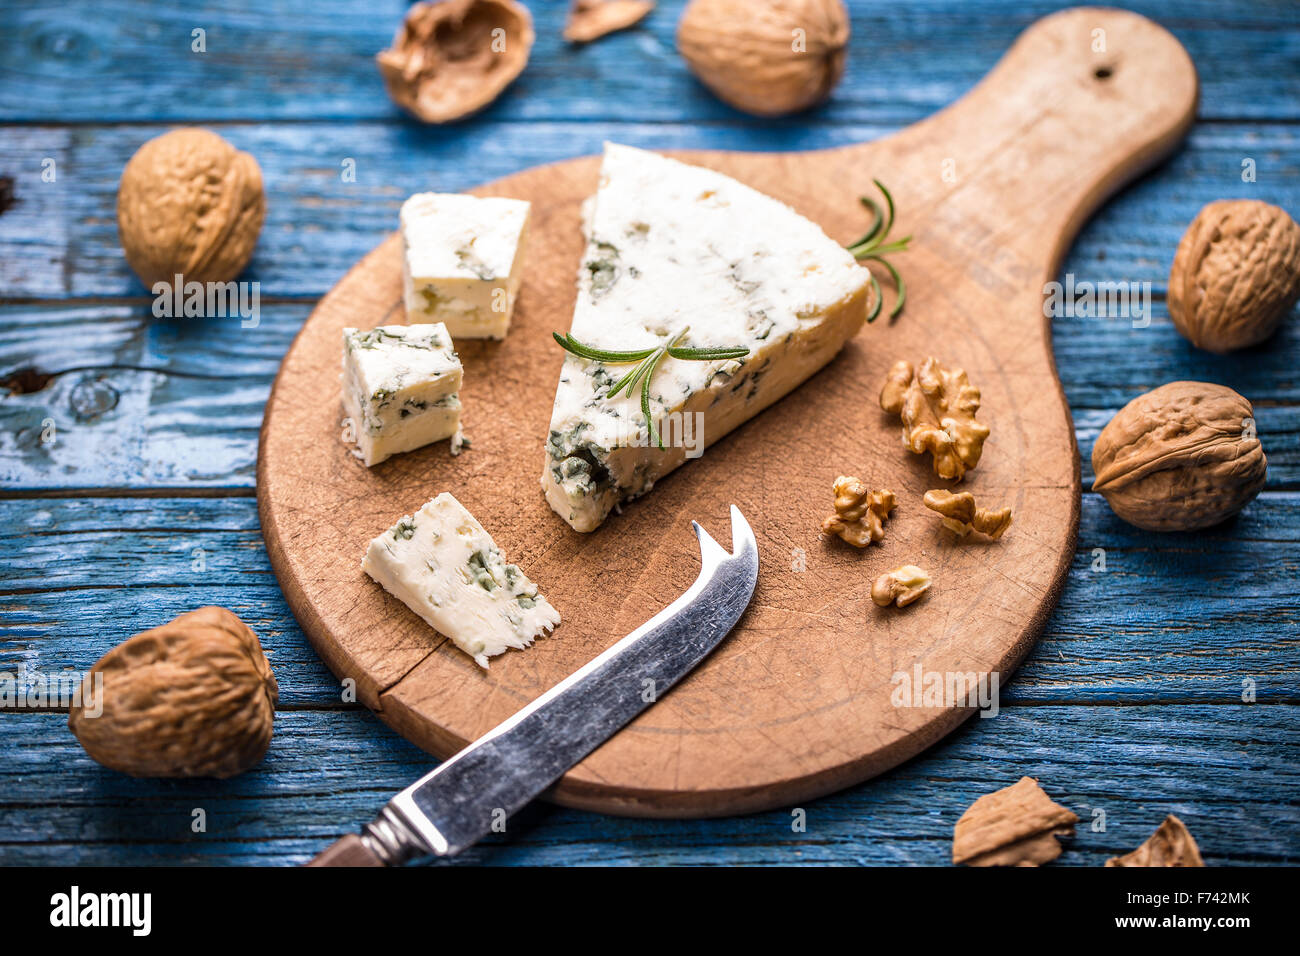 Blue cheese on wooden cutting board - Stock Image